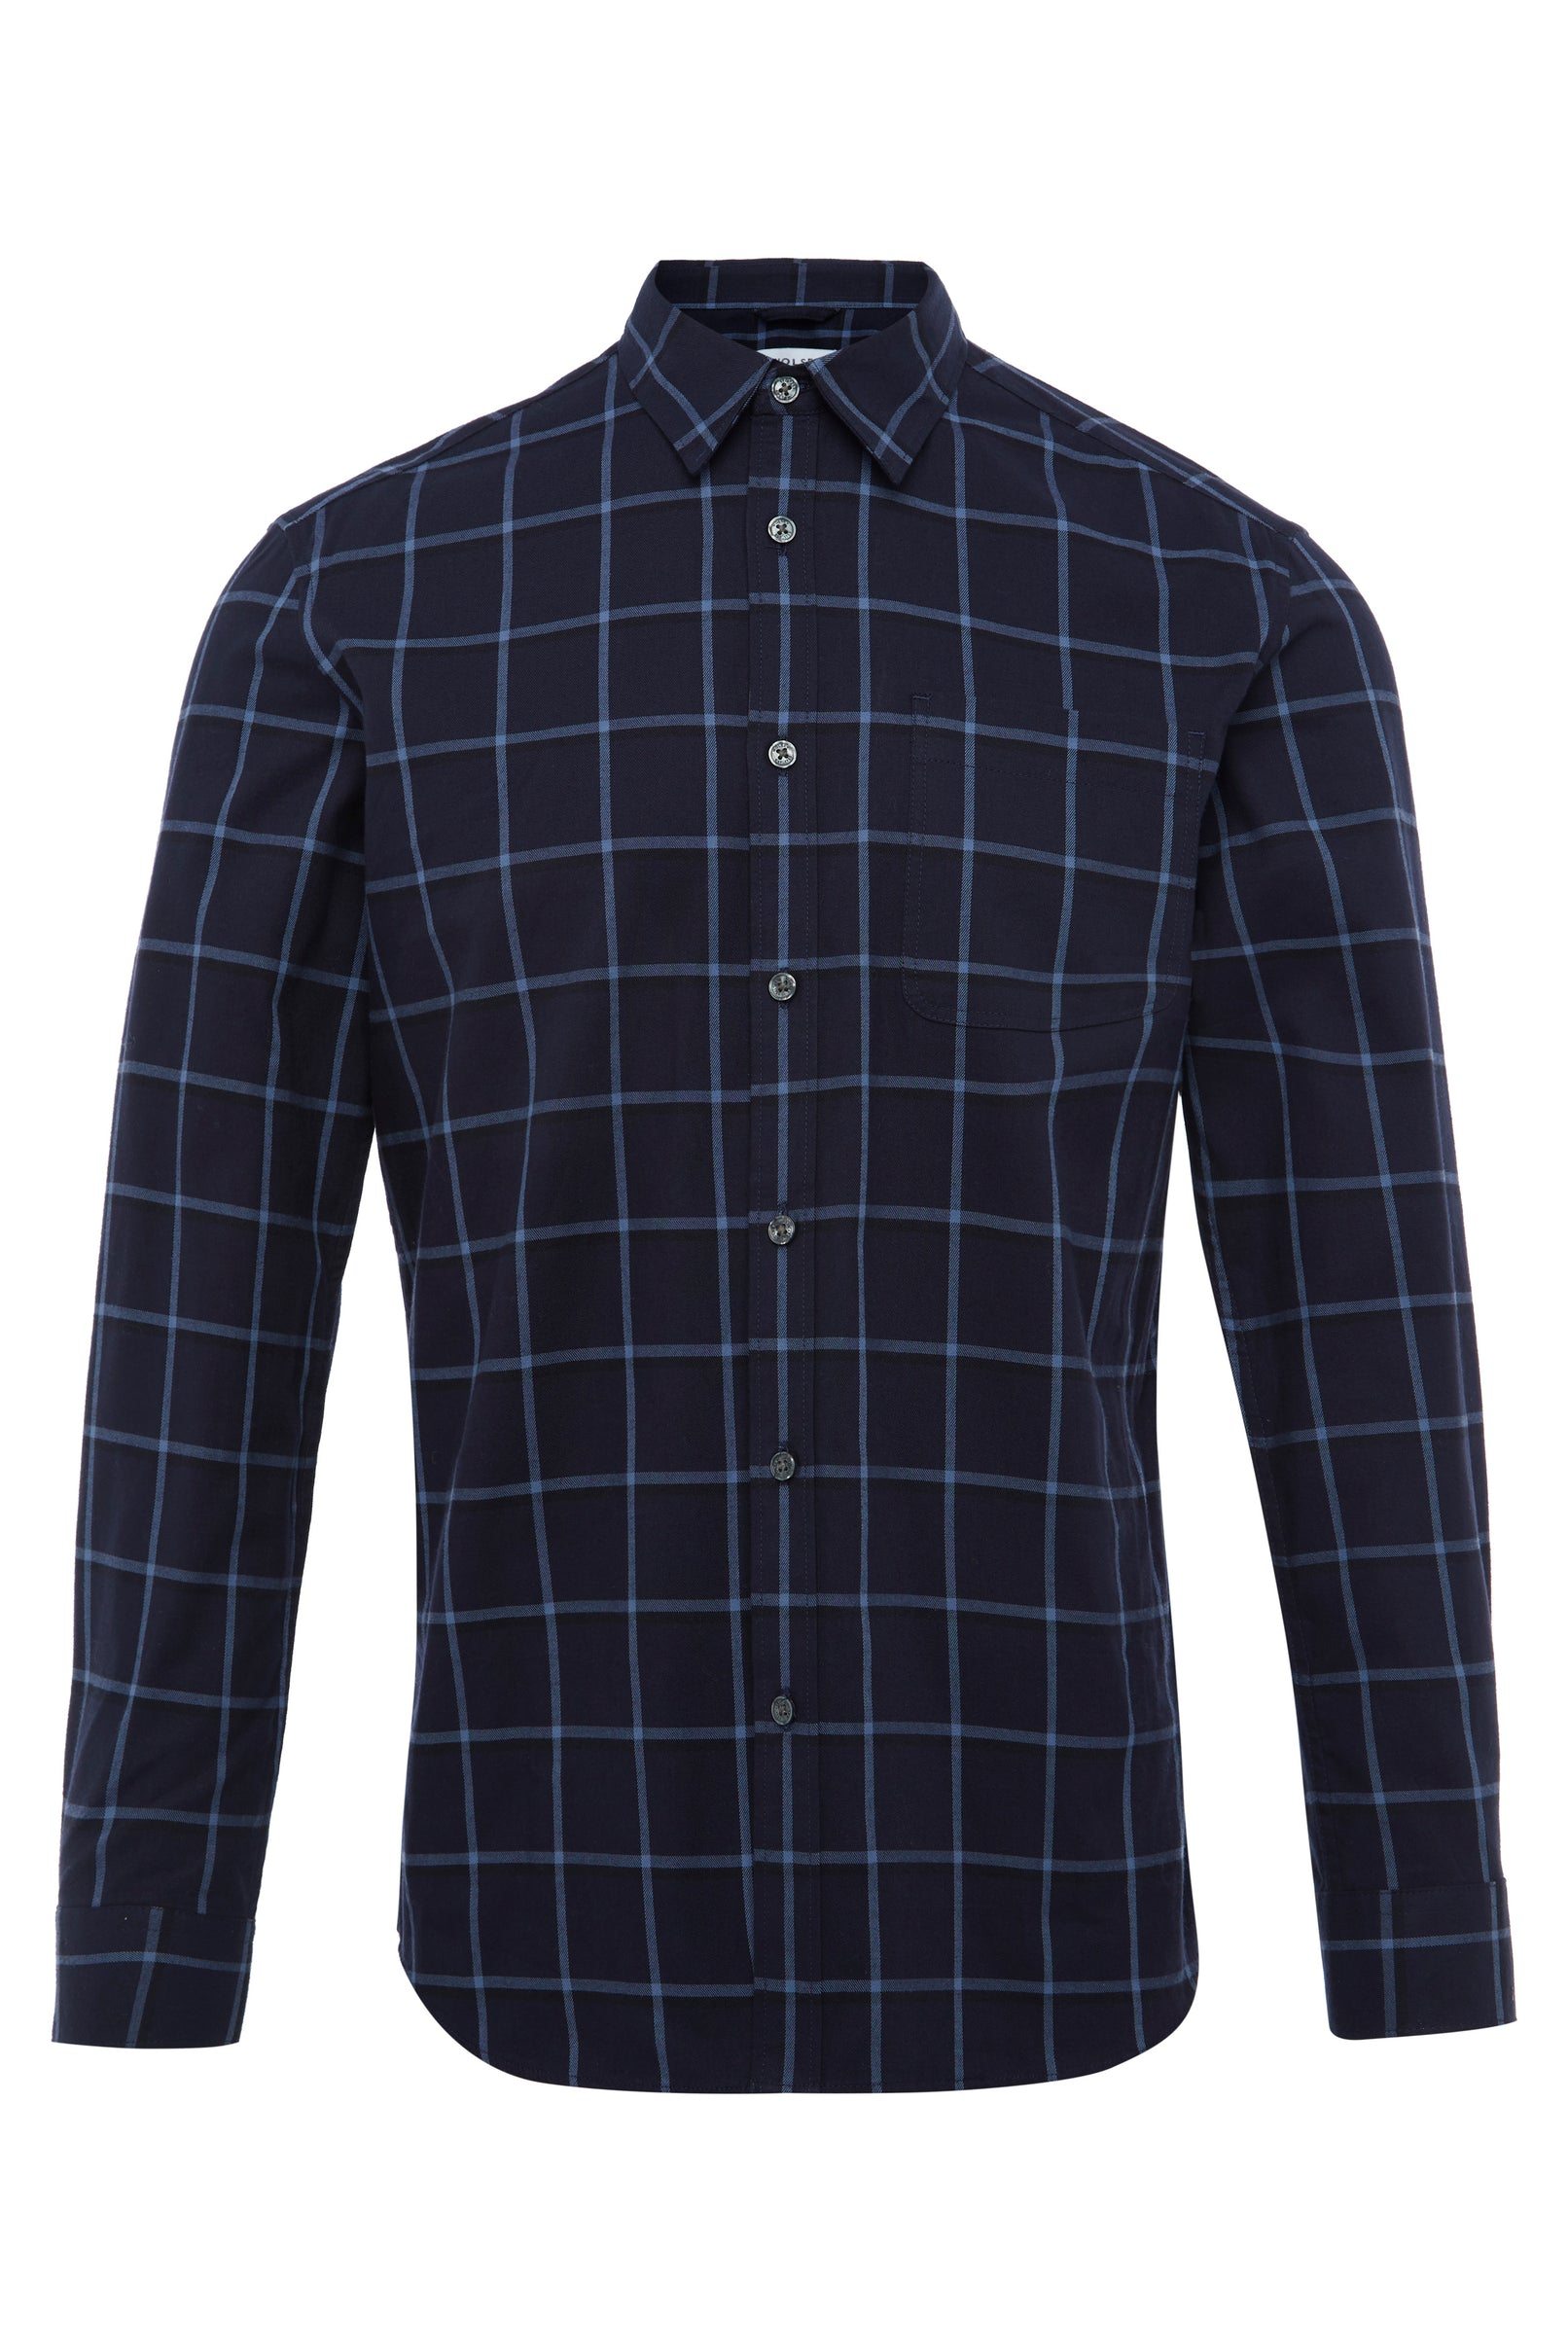 NAVY BRUSHED SHADOW GRID CHECK SHIRT